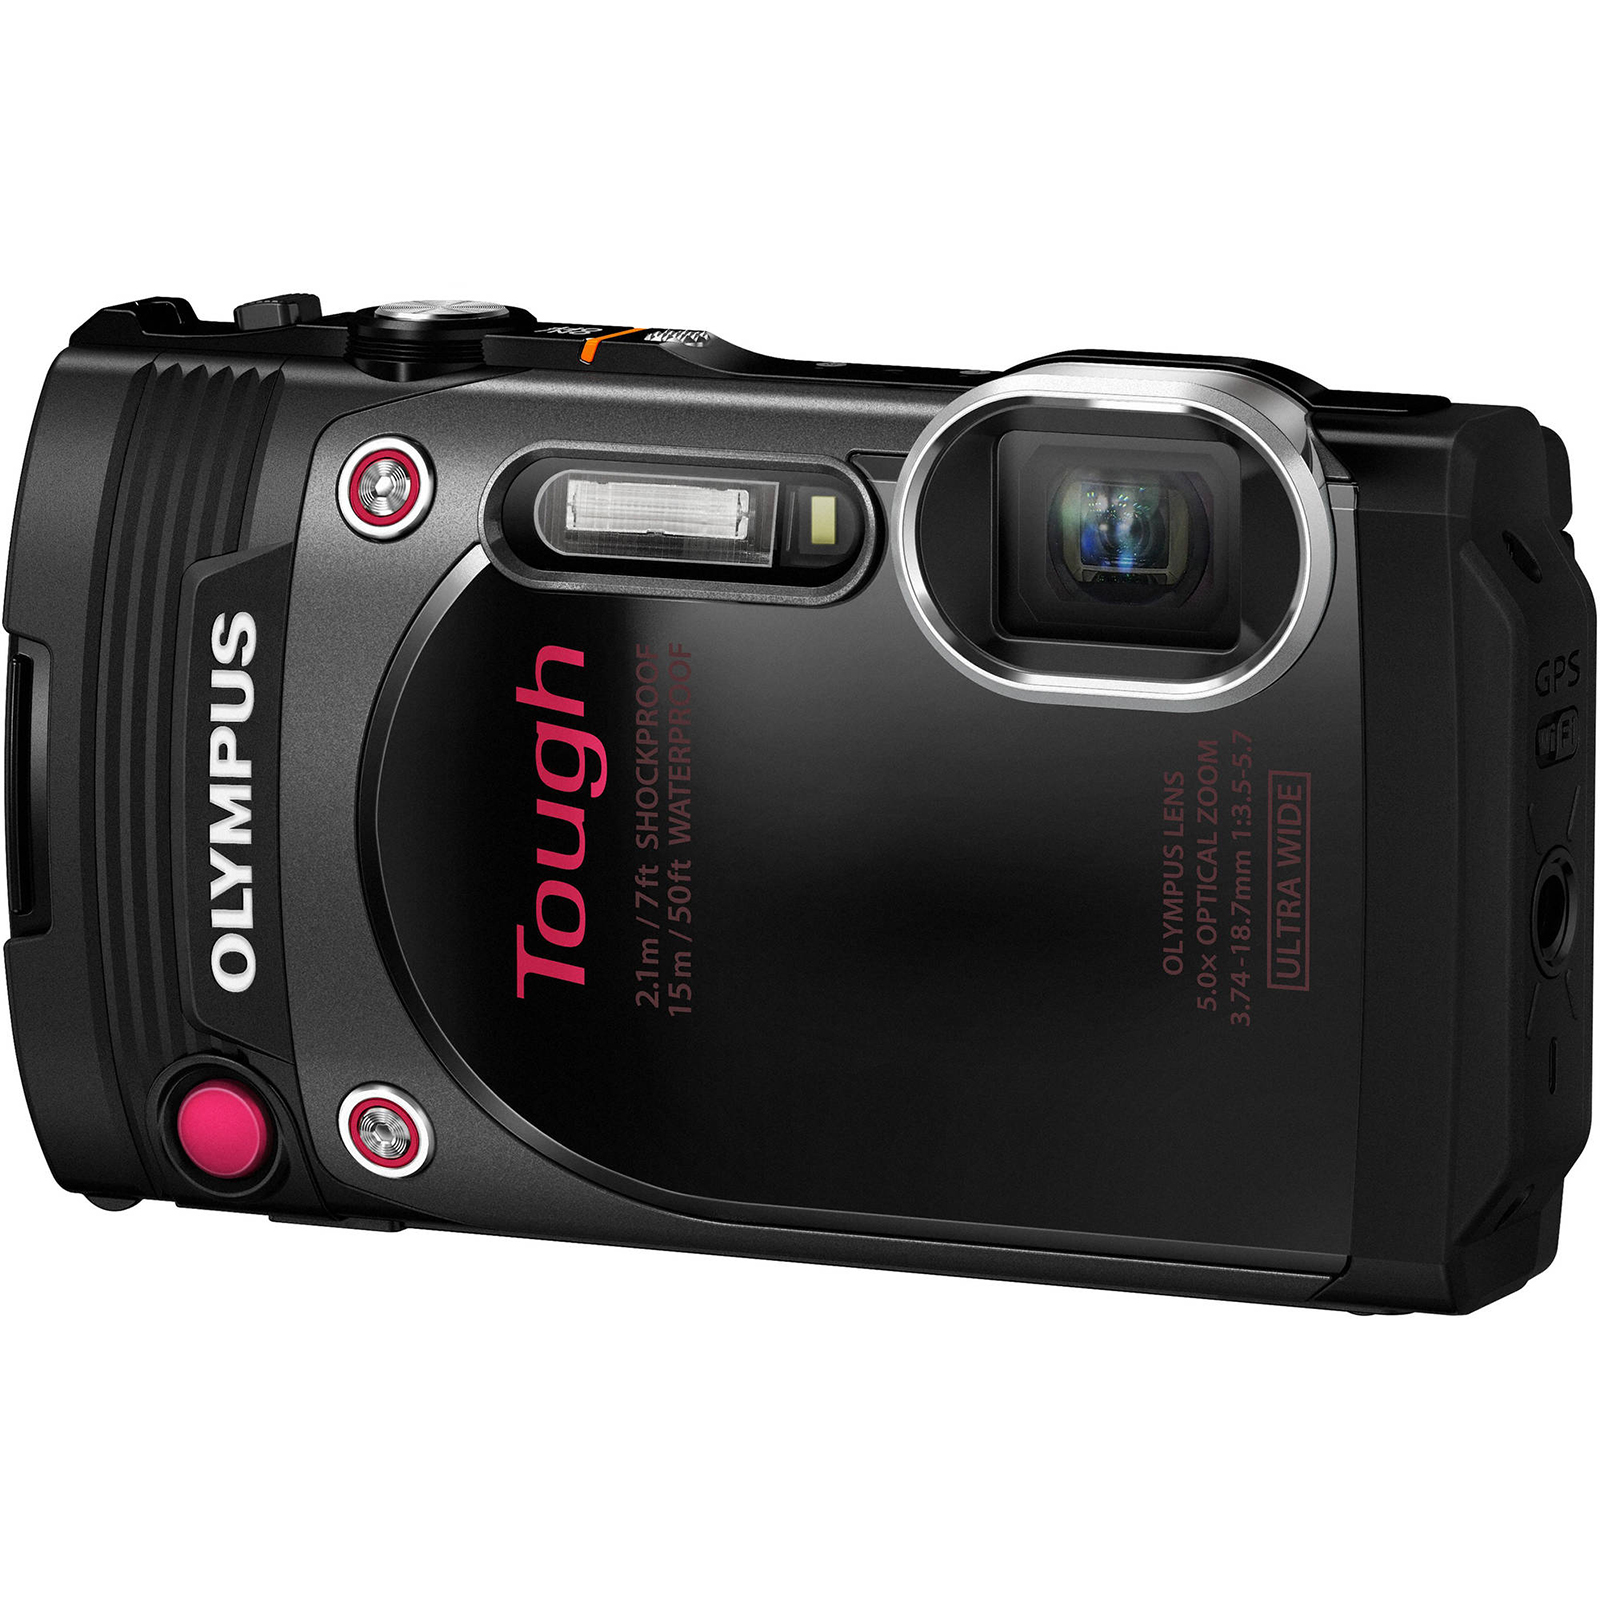 Olympus Tough TG-870 Wi-Fi GPS Shock & Waterproof Digital Camera (Black)